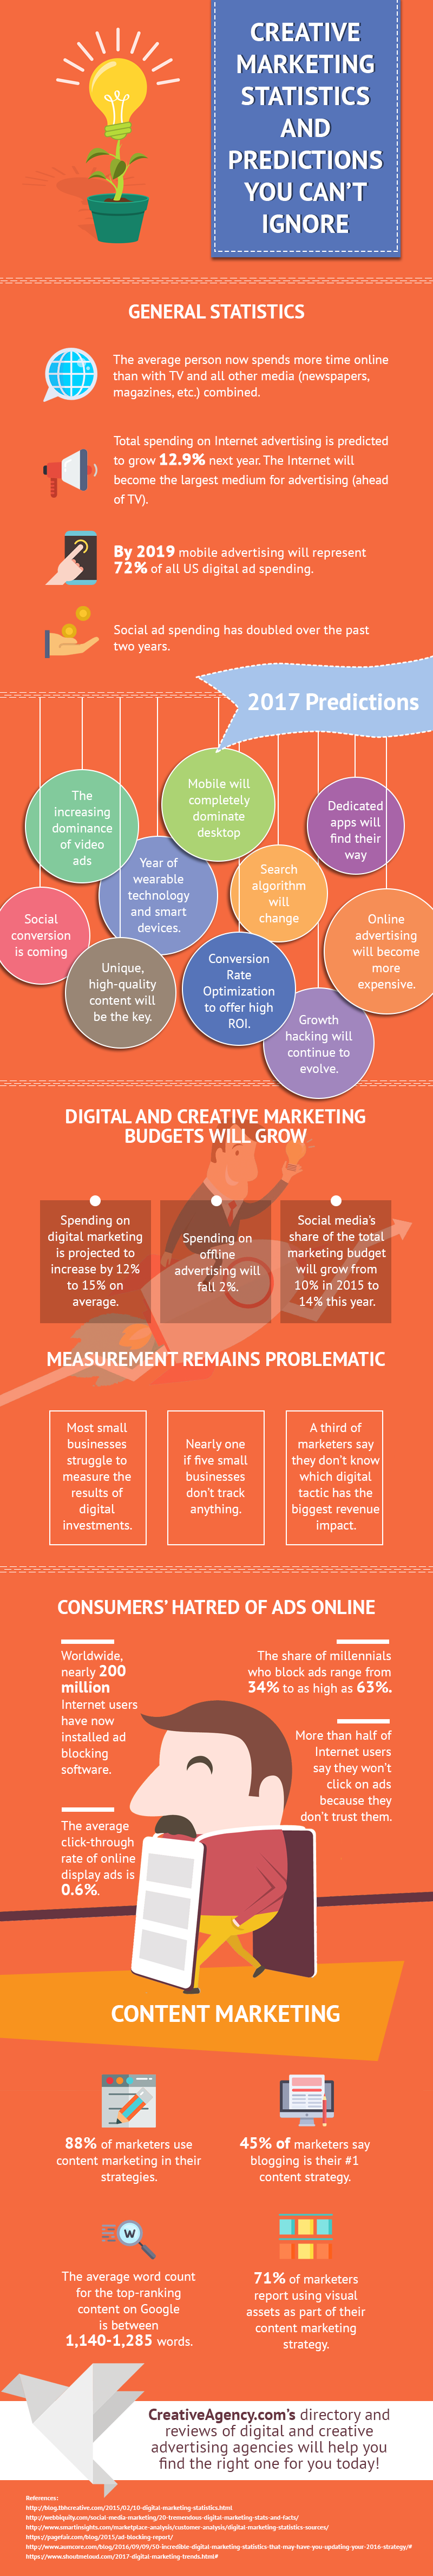 creative marketing statistics